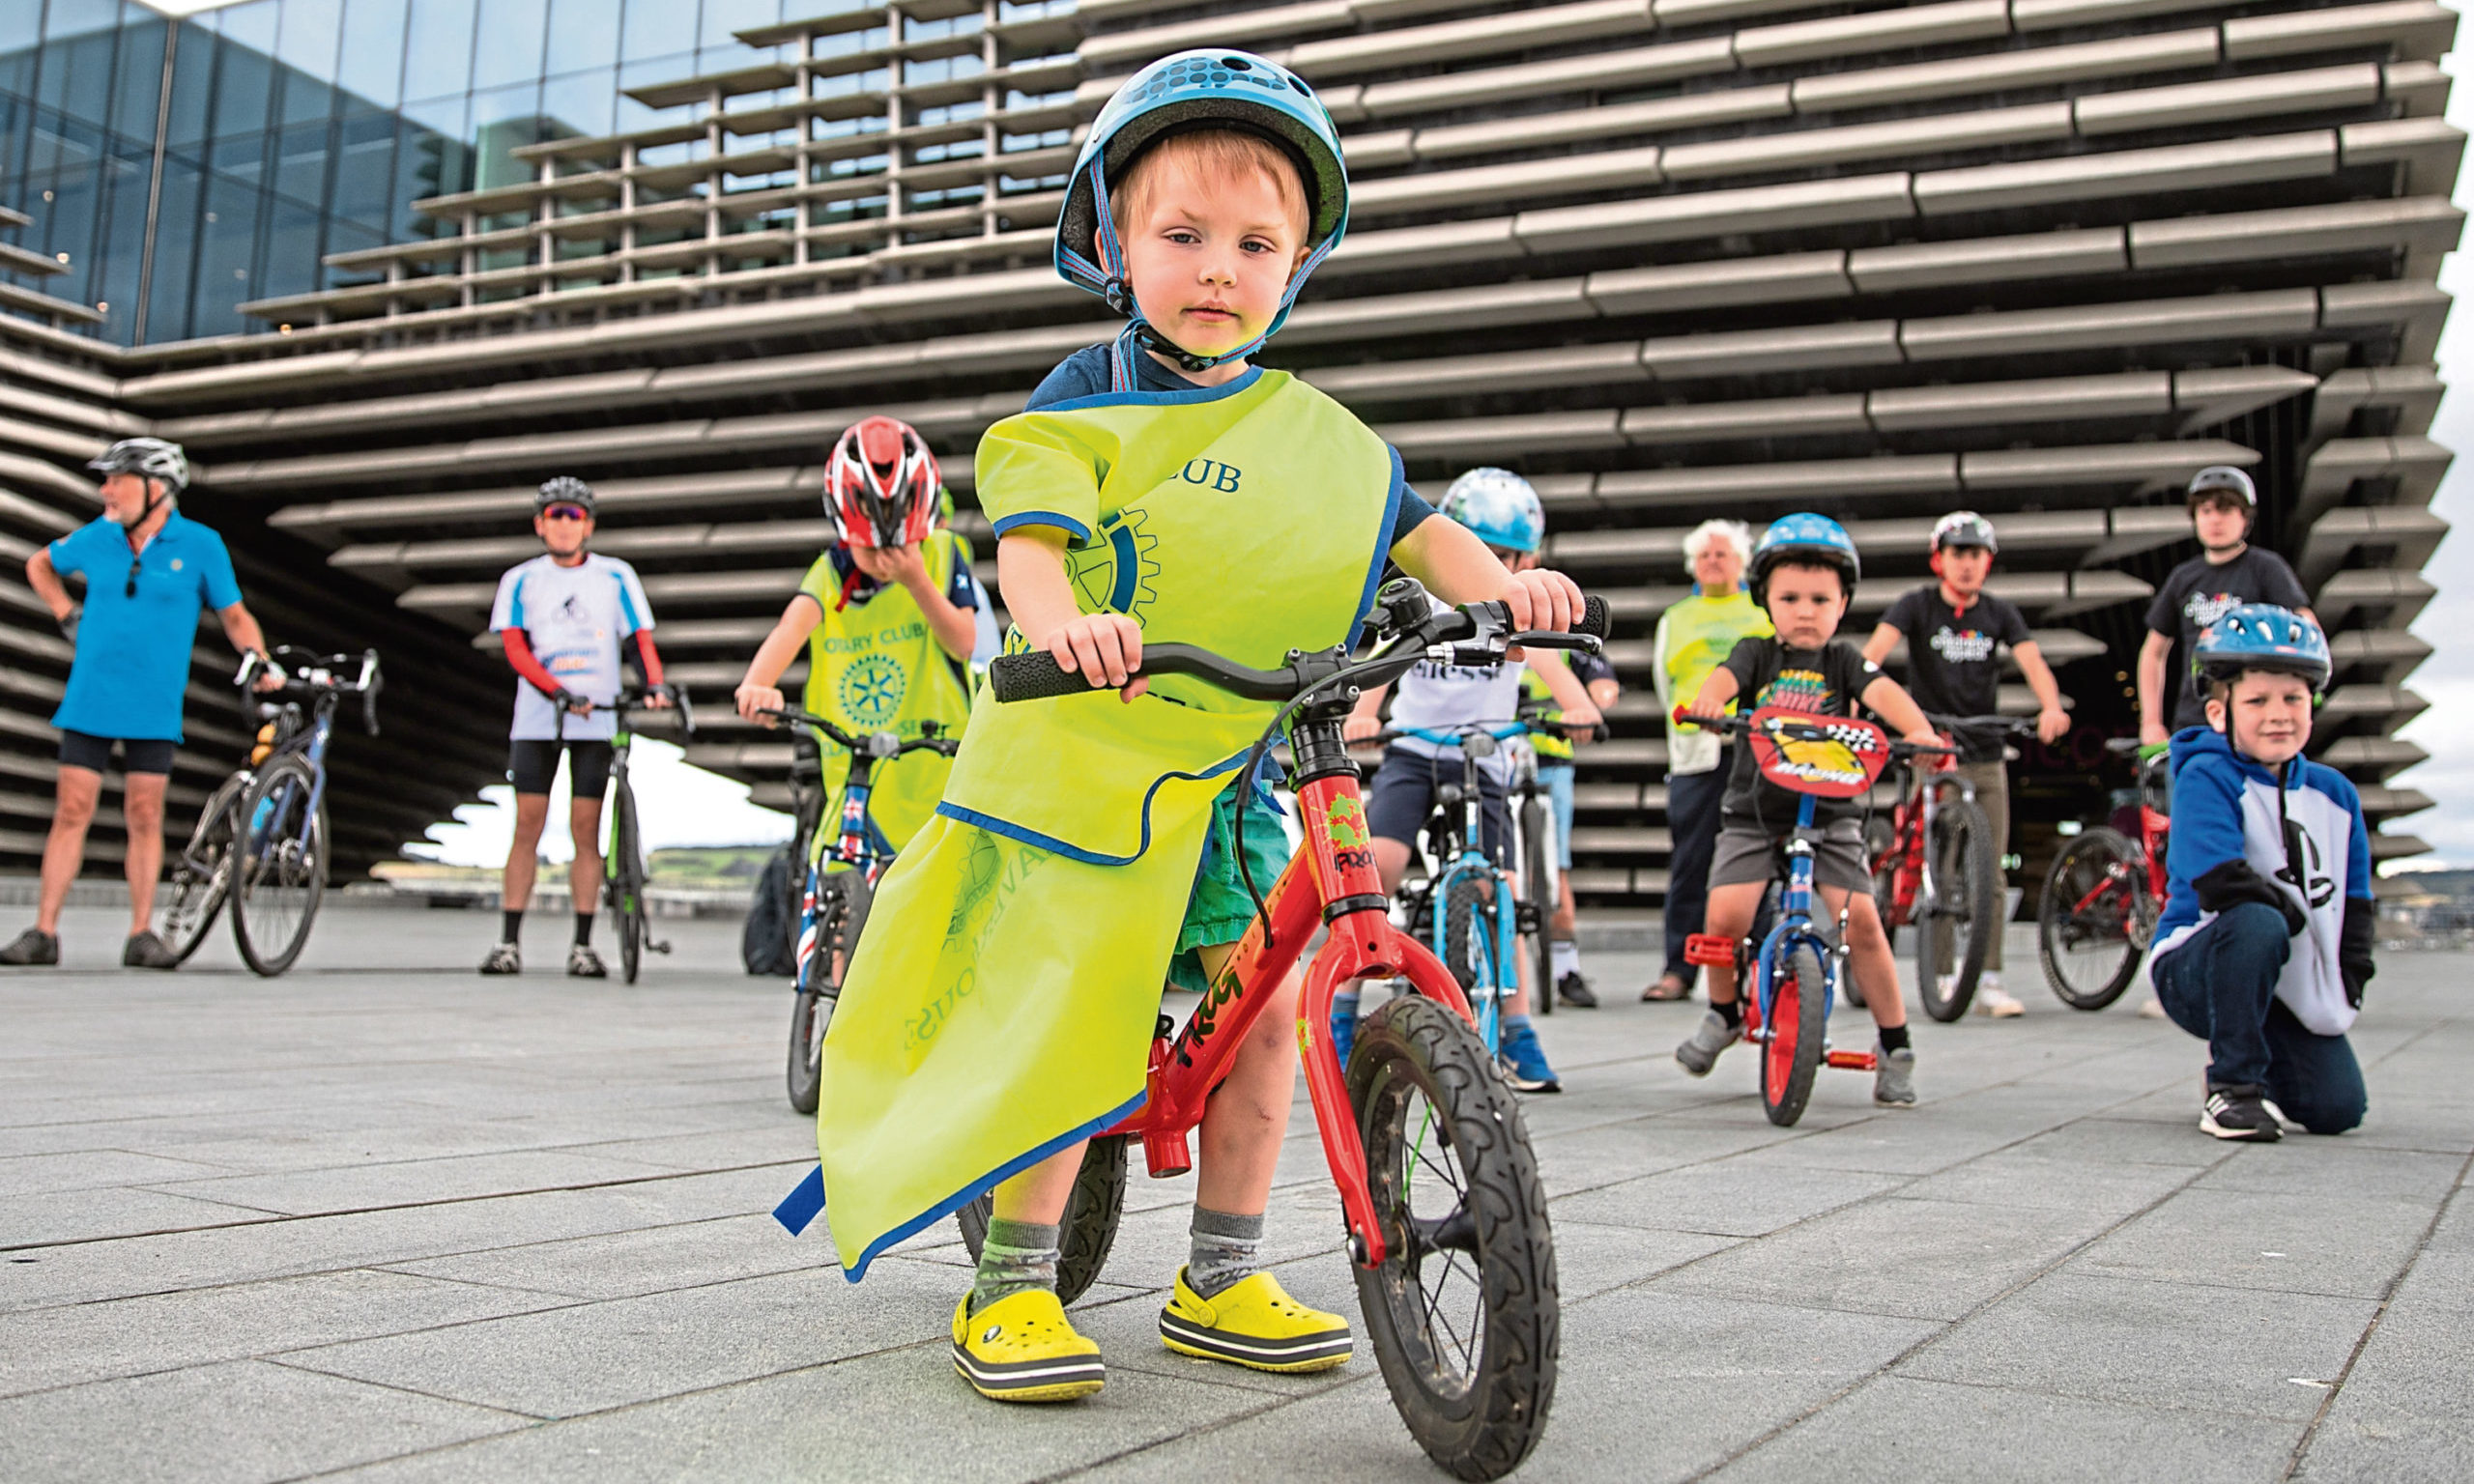 Alex Horner, 3, leads the pack, with other participants at the launch.